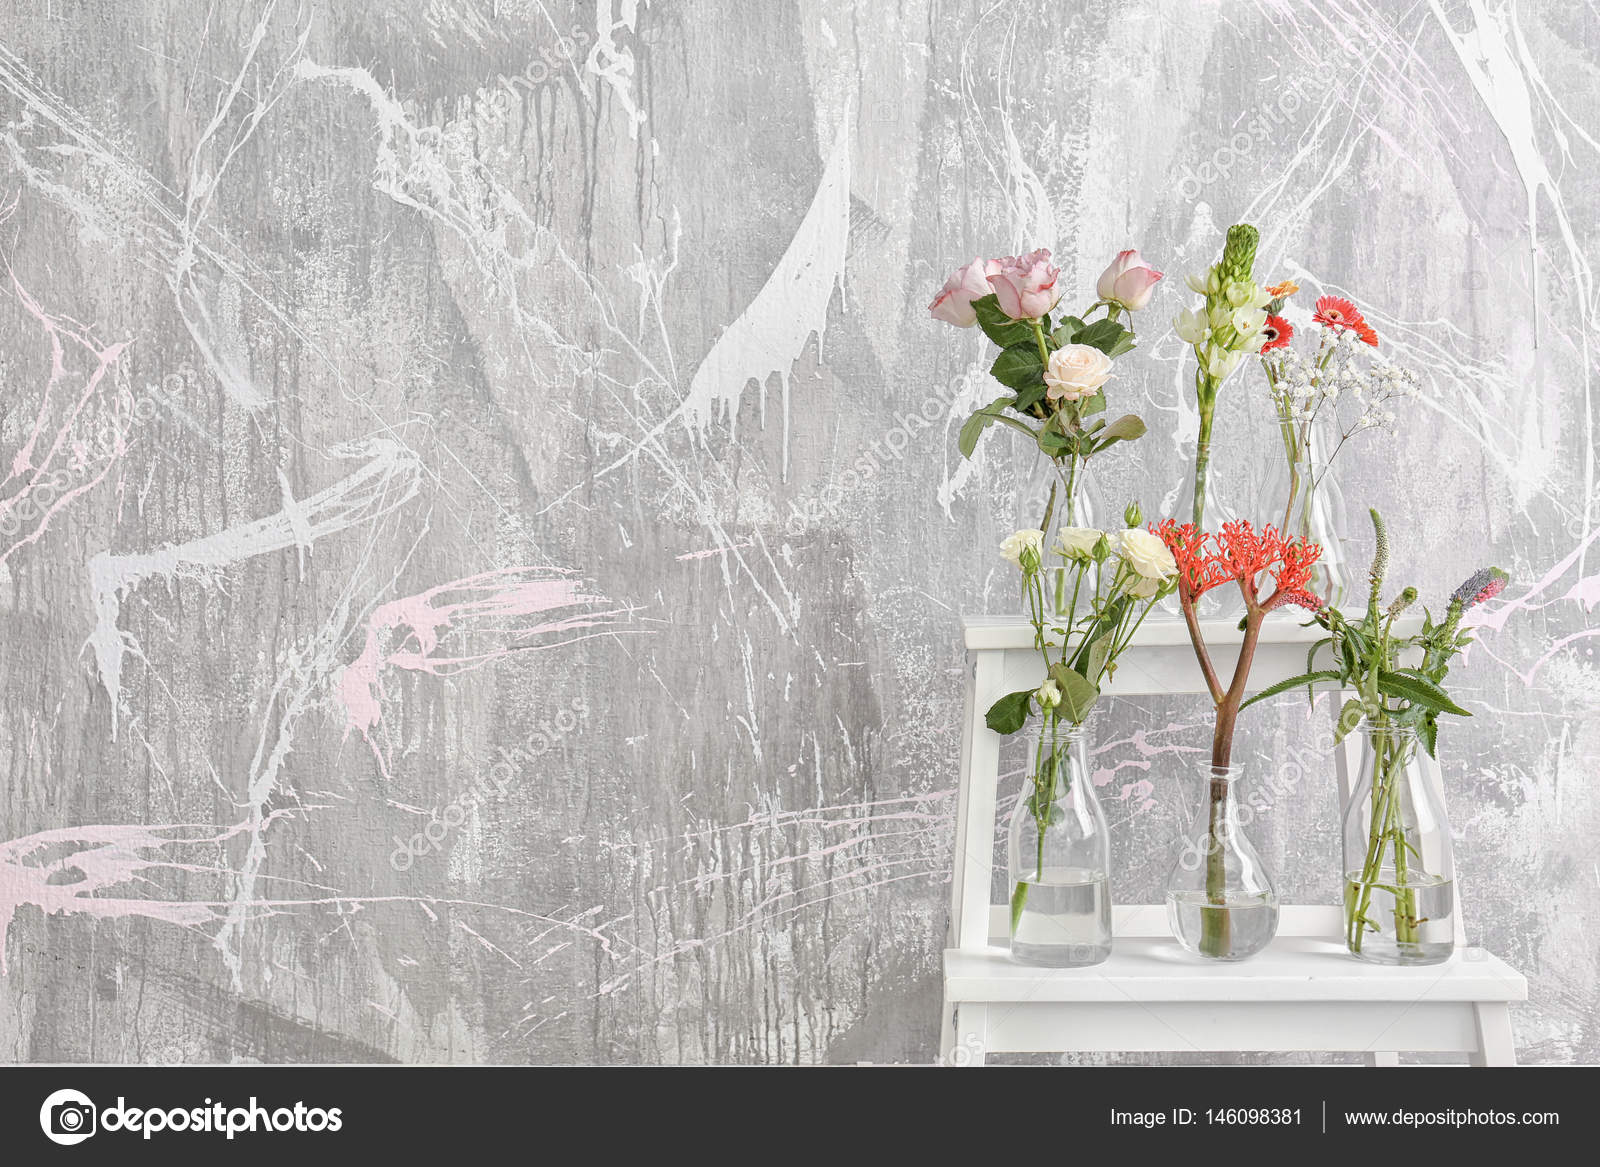 Beautiful flowers in glass vases stock photo belchonock 146098381 beautiful flowers in glass vases on step ladder against textured wall background photo by belchonock izmirmasajfo